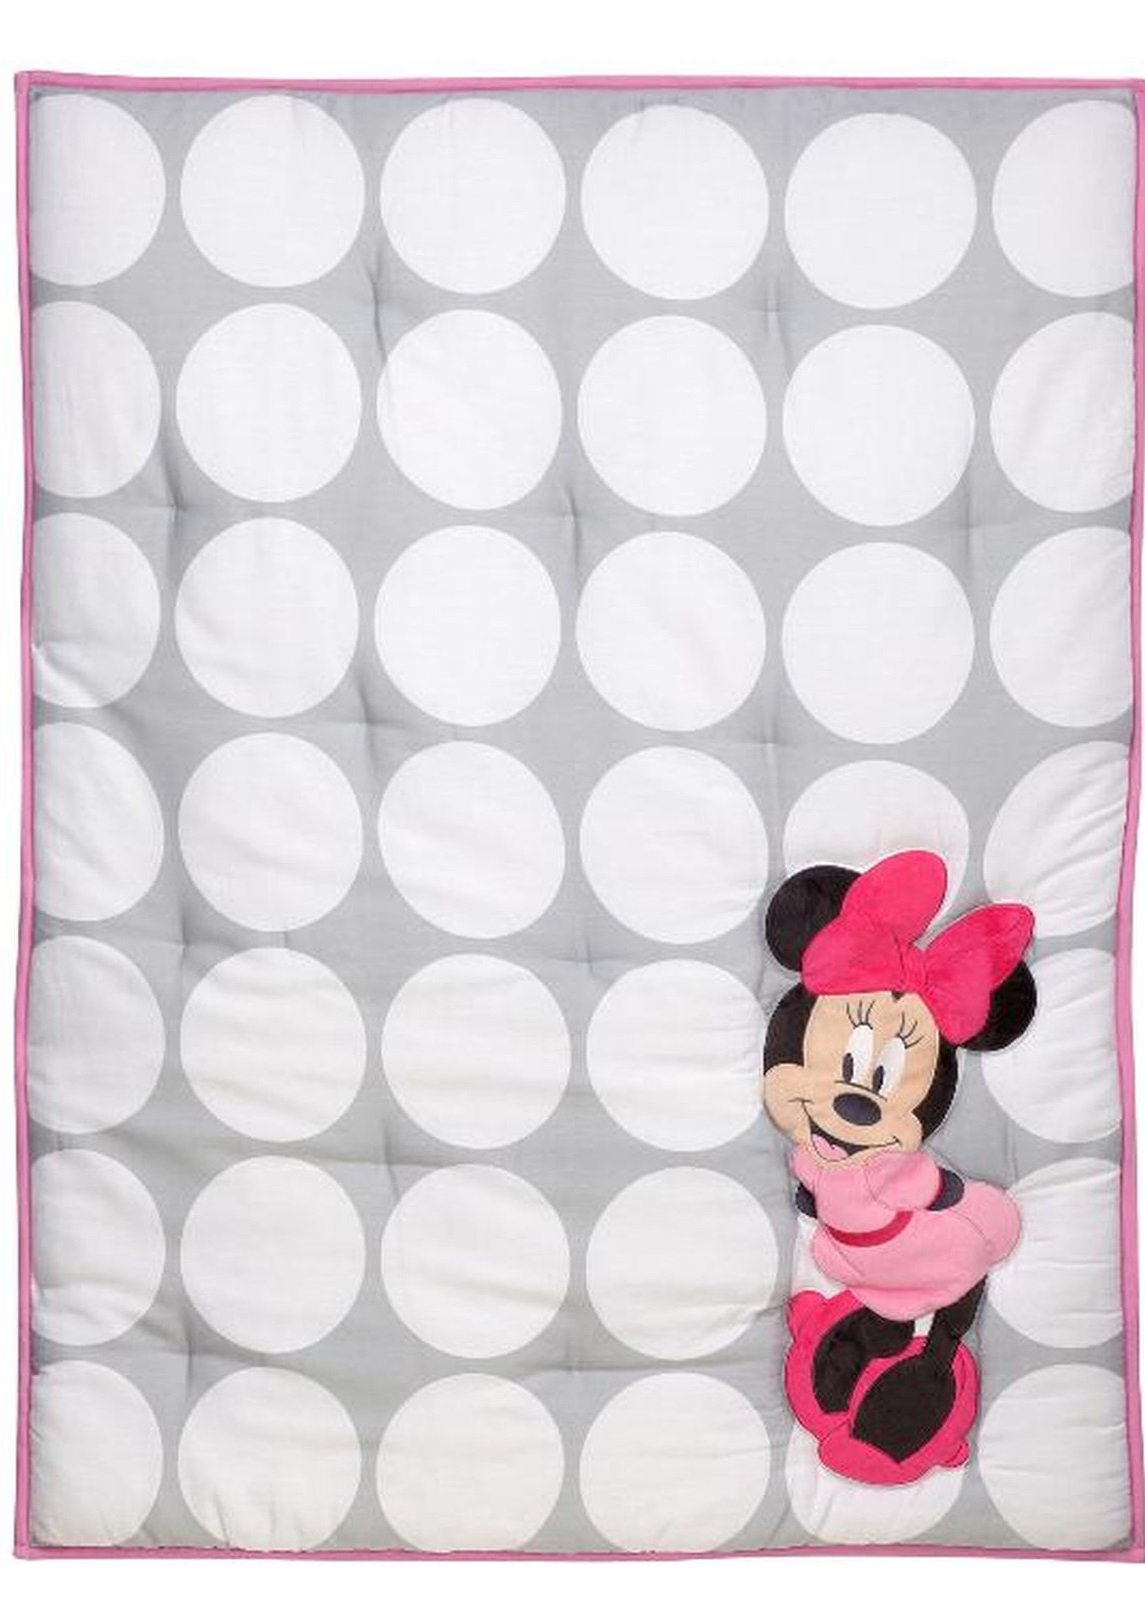 Disney Minnie Mouse Polka Dots Baby Crib or Stroller - Quilted Appliqued (Comforter Only)